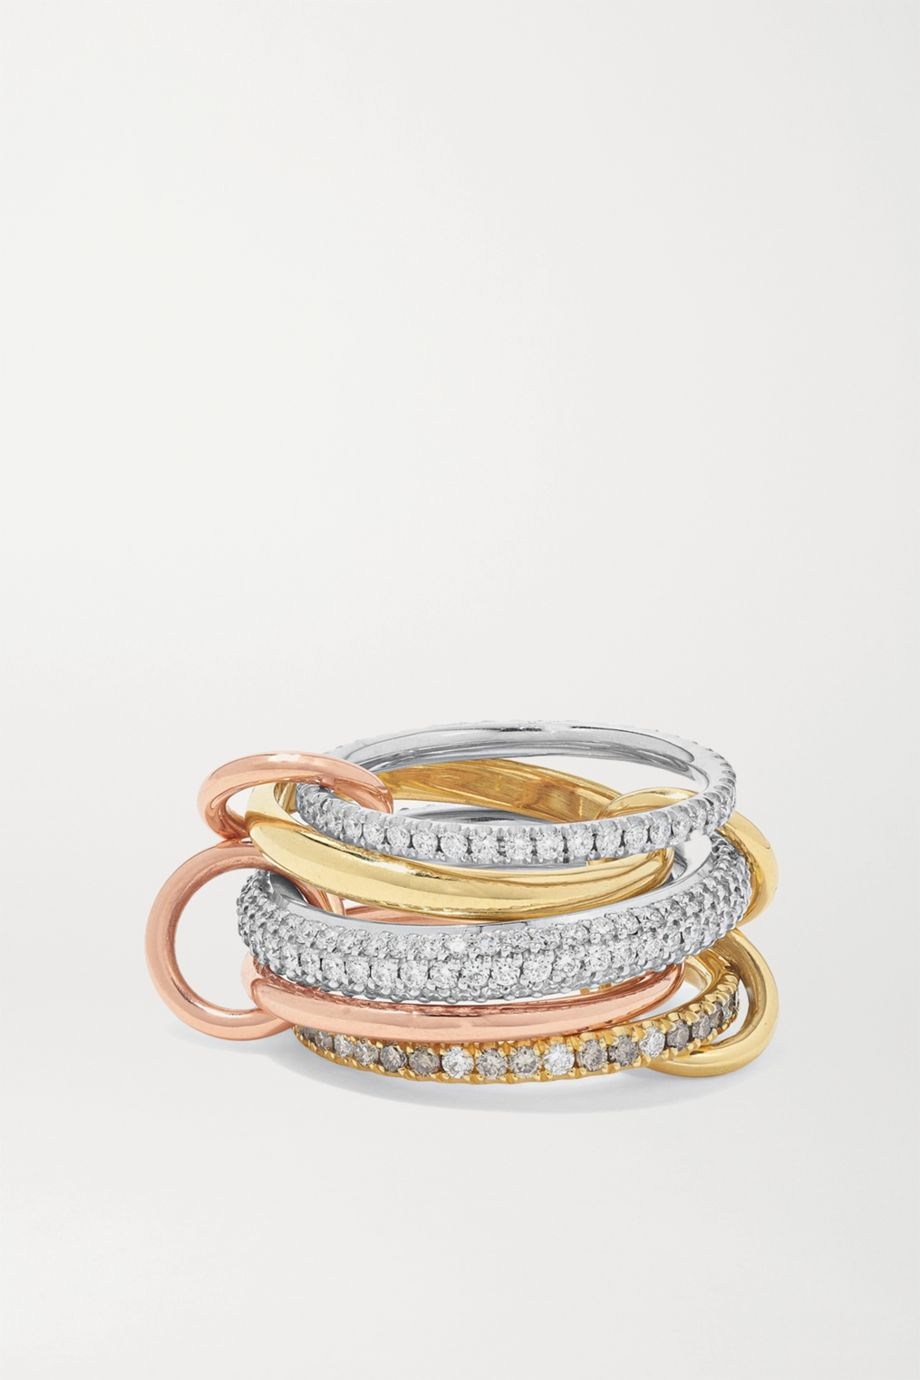 Spinelli Kilcollin Leo Blanc set of five 18-karat white, yellow and rose gold diamond rings